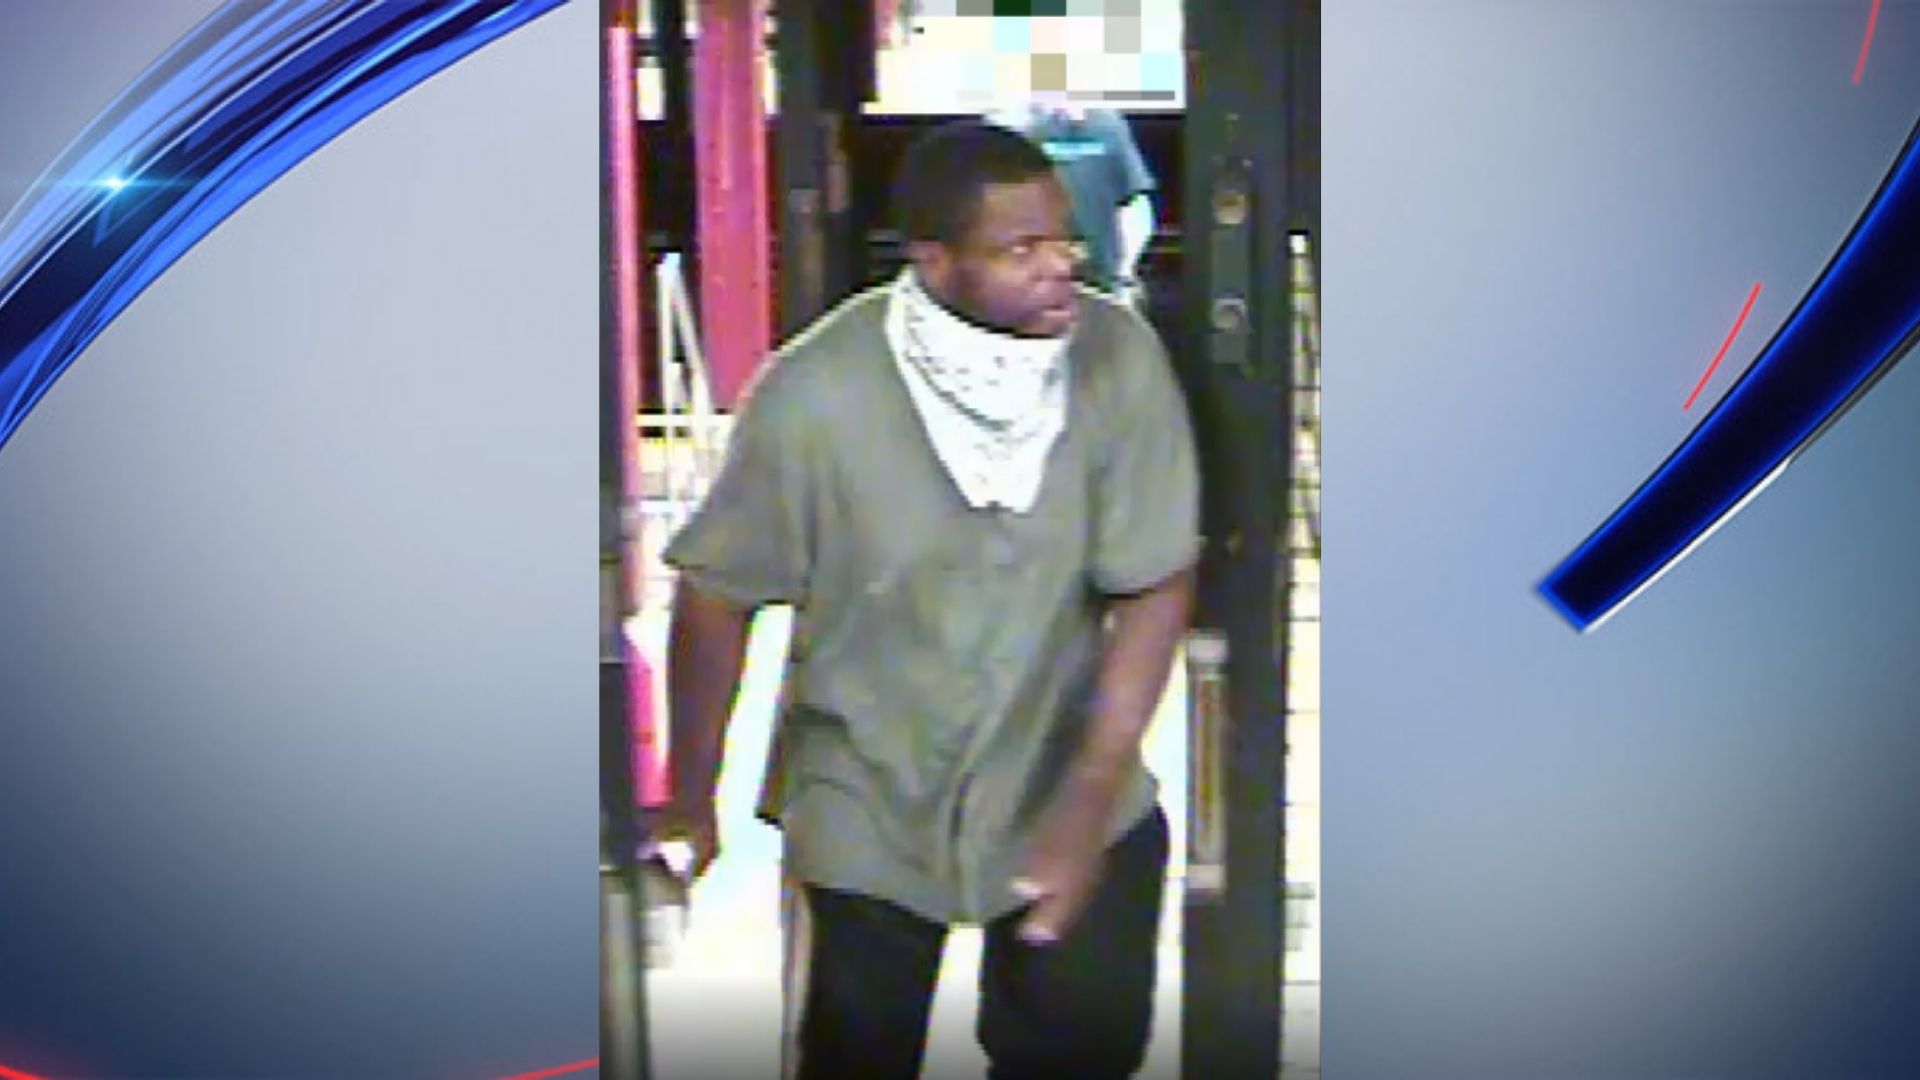 suspect in subway attempted robbery